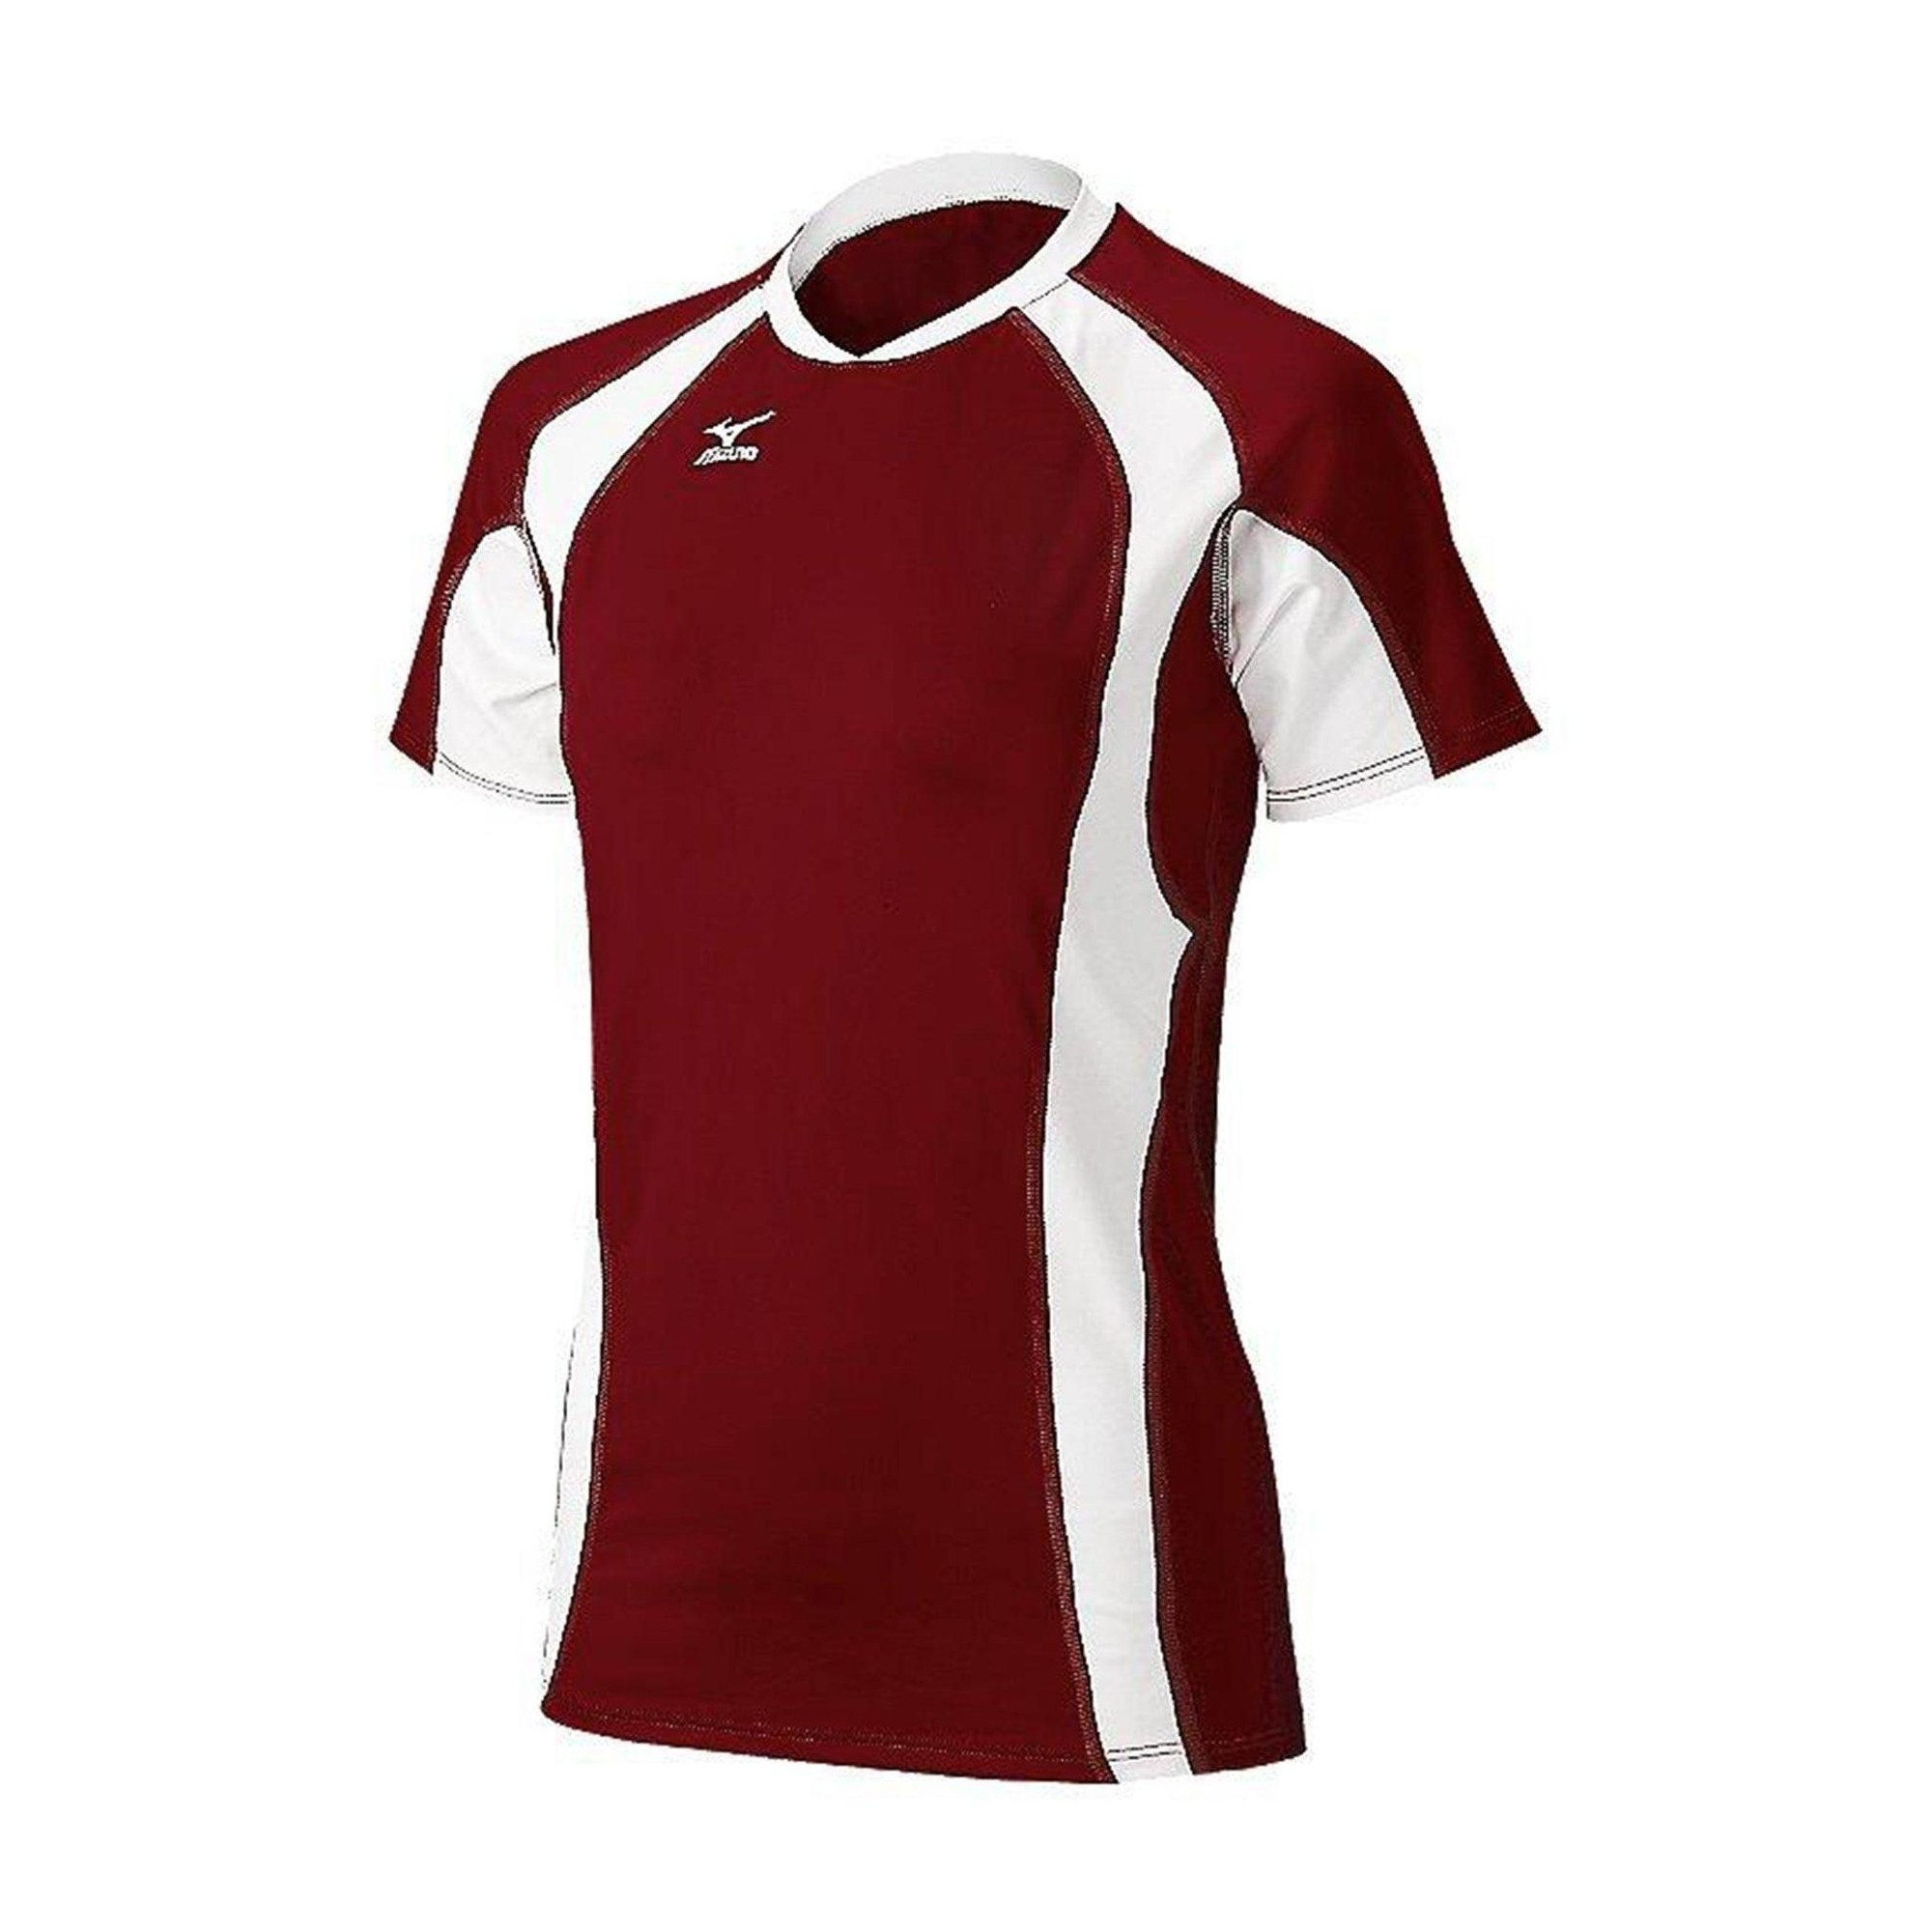 Mizuno Womens Volleyball Apparel Techno Volley V Short Sleeve Jersey 440442 Size Extra Extra Small C Volleyball Jerseys Volleyball Outfits Women Volleyball